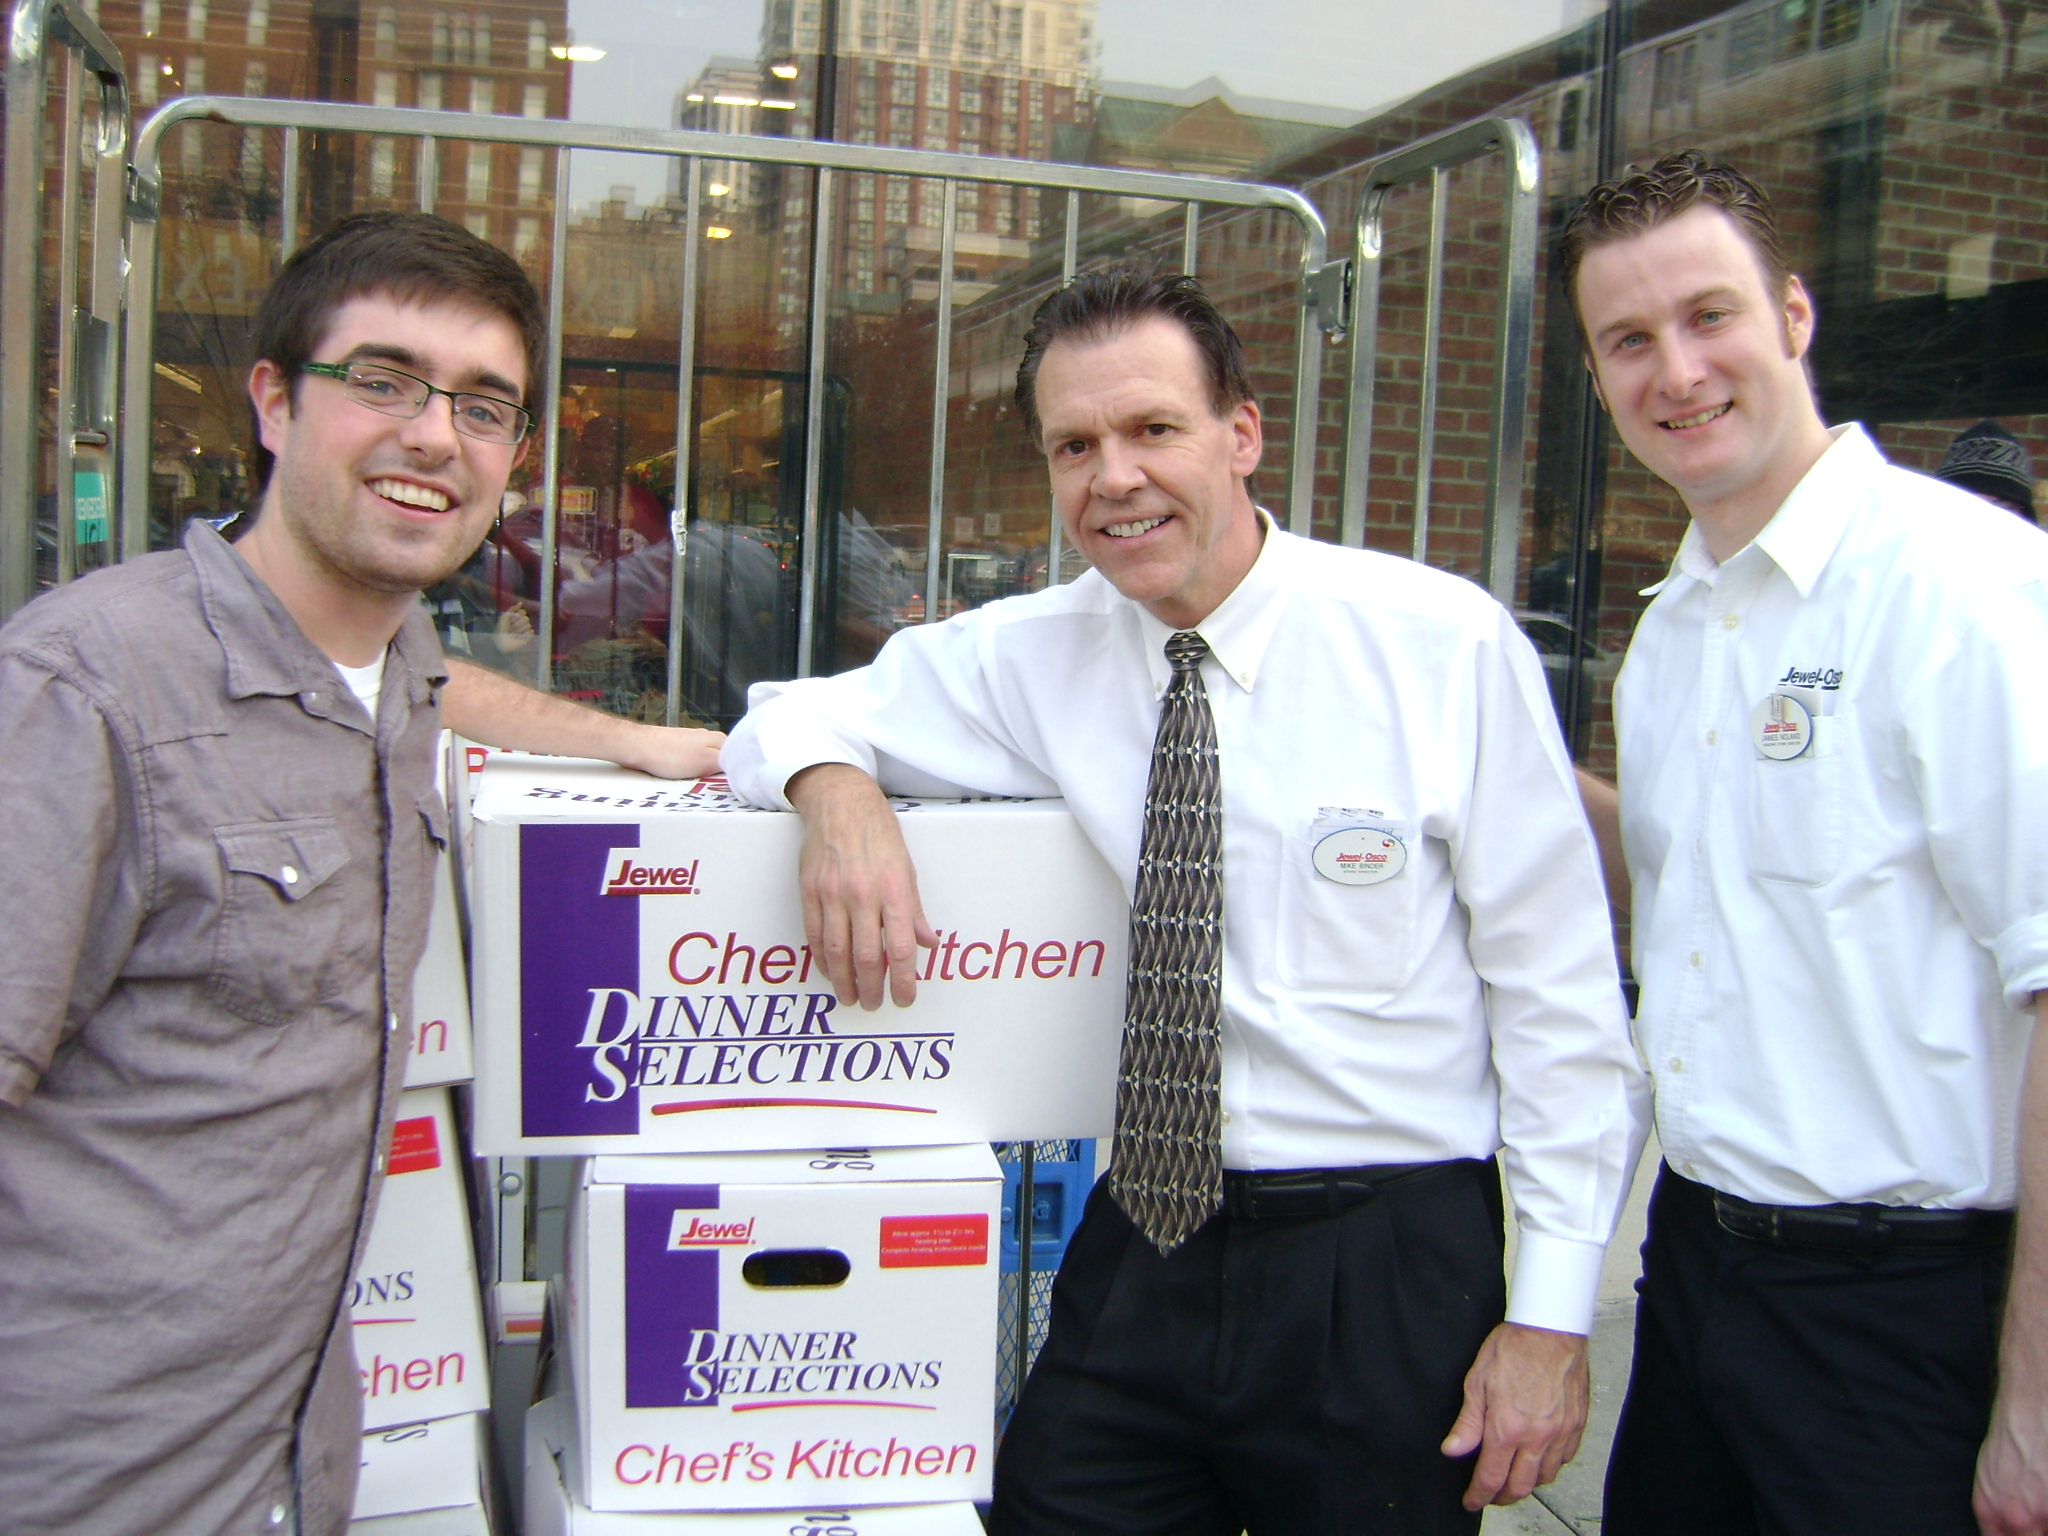 BVC Chicago 2012 Ted Kain receiving donations fro Jewel grocery.jpg